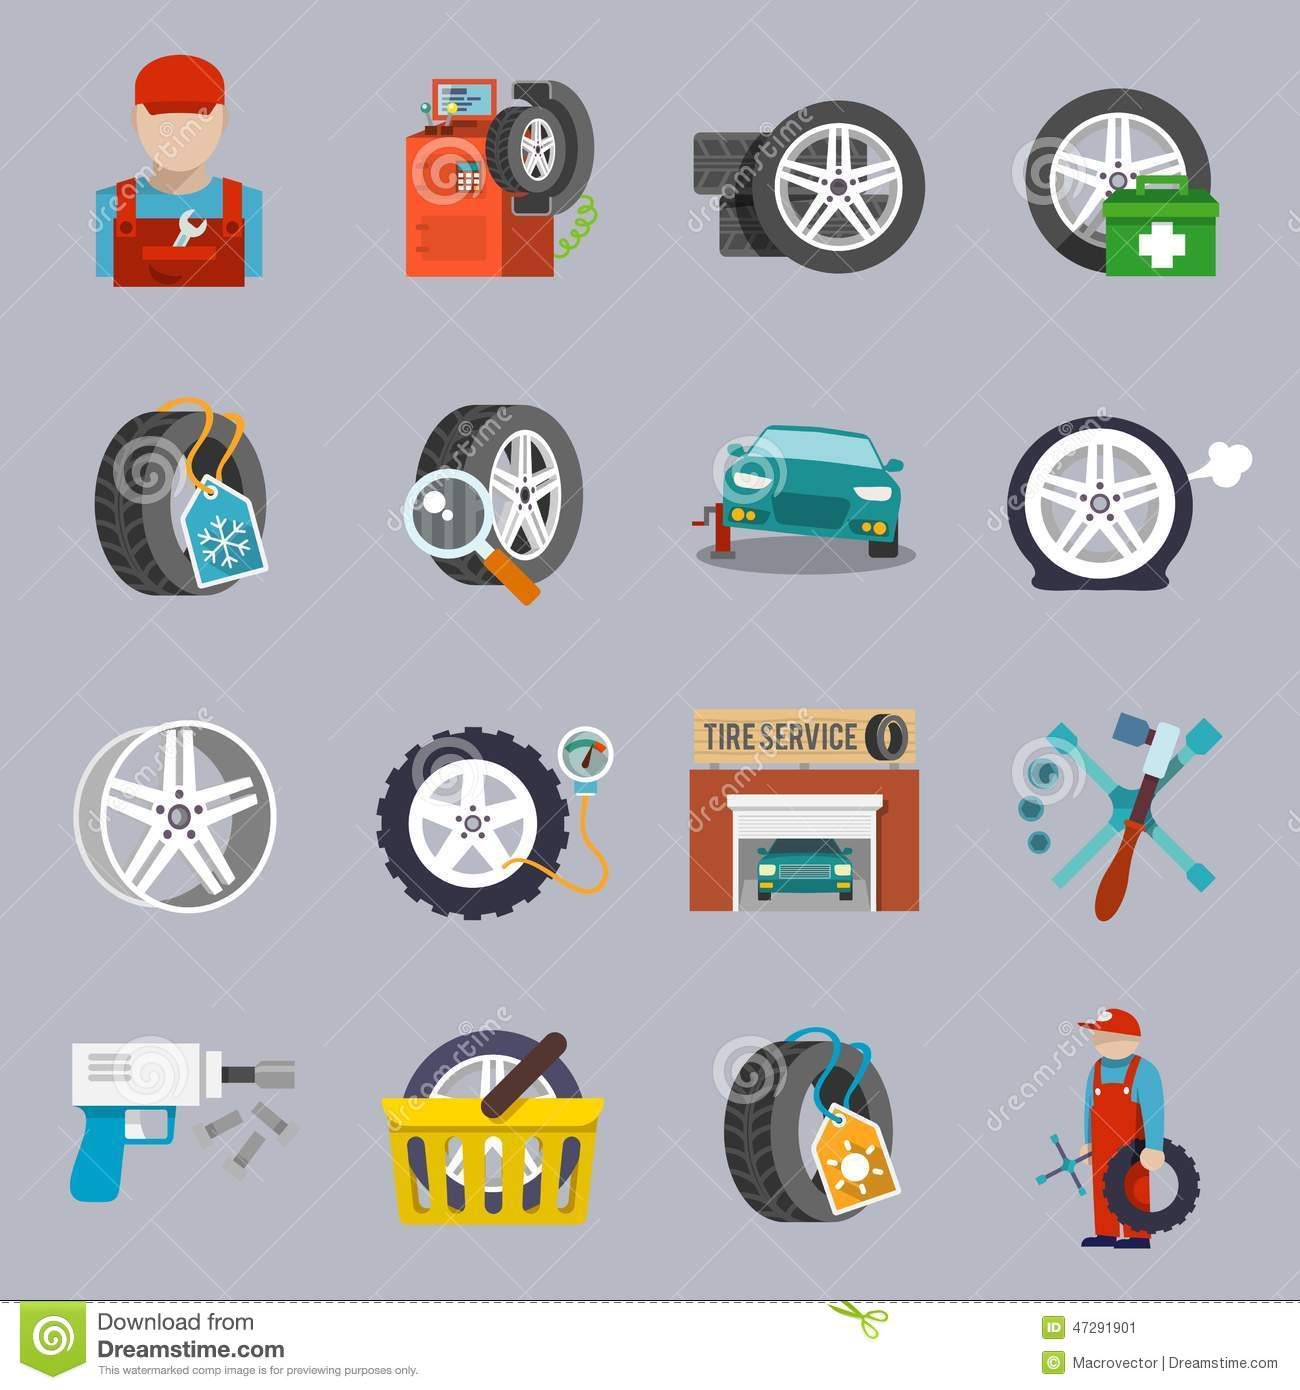 Tire Service Icon Flat Stock Vector Image Of Illustration